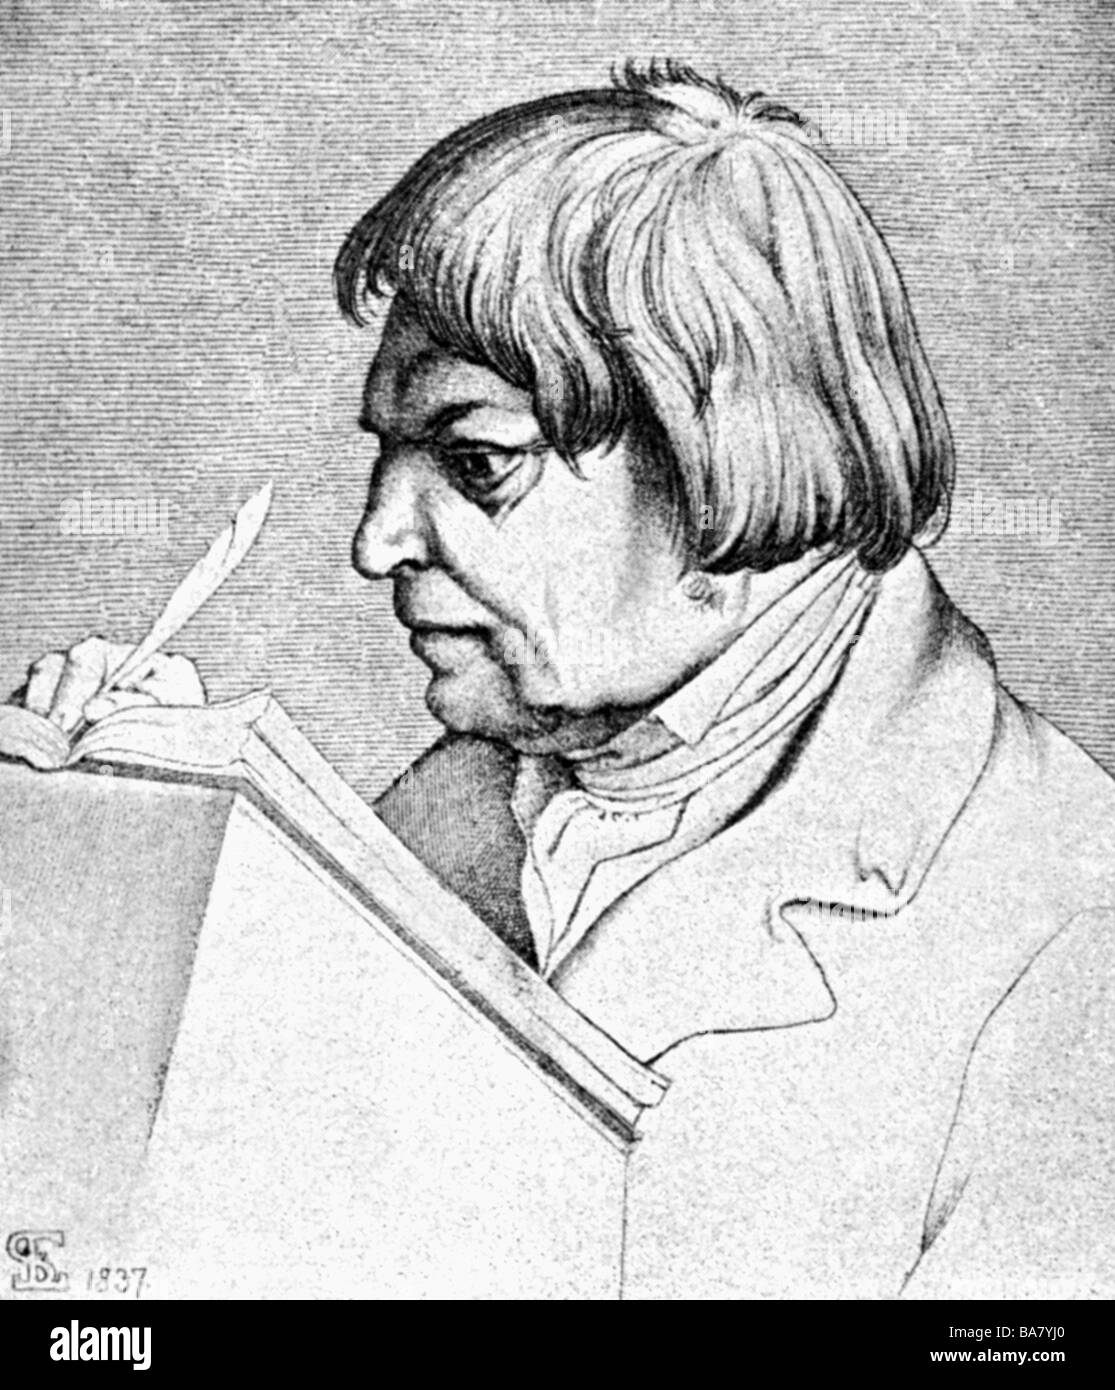 Görres, Johann Joseph von, 25.1.1776 - 29.1.1848, German author / writer, portrait, wood engraving after drawing - Stock Image